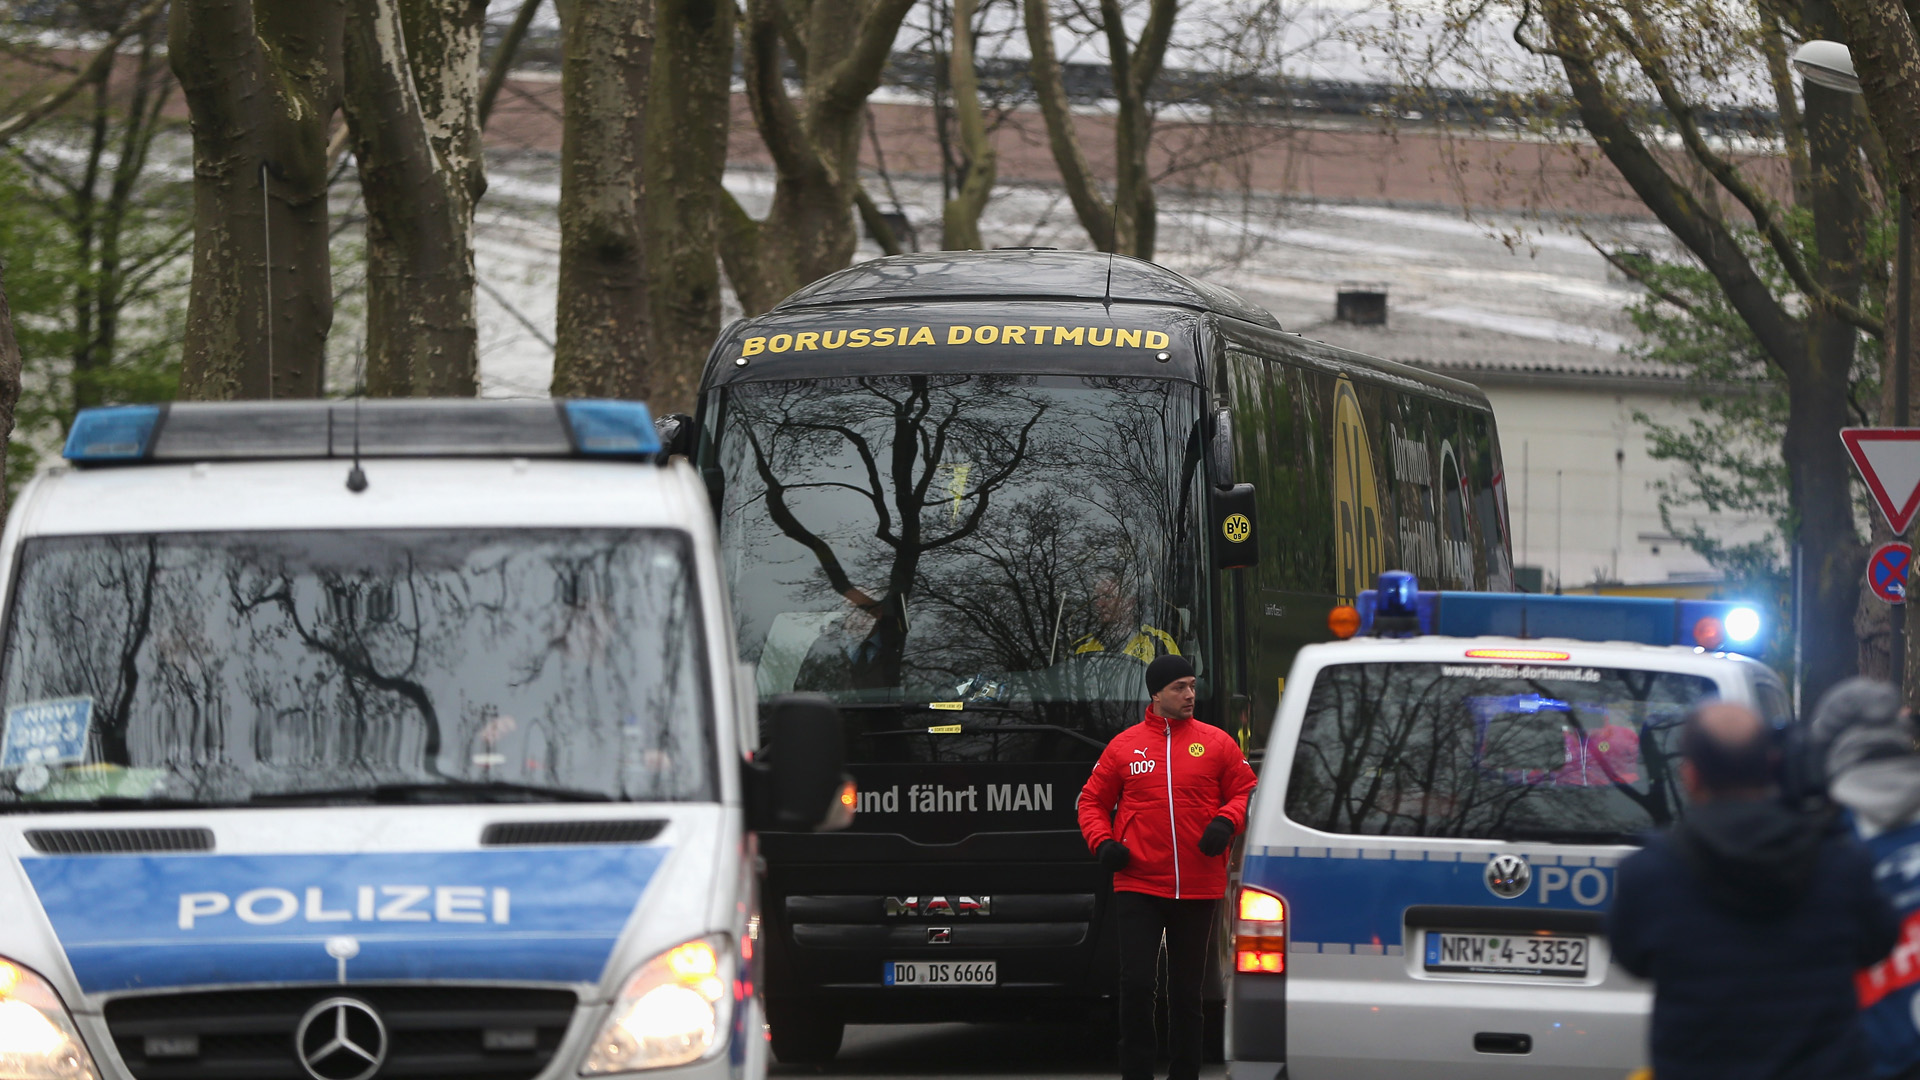 borussia dortmund bus championsl league 041217